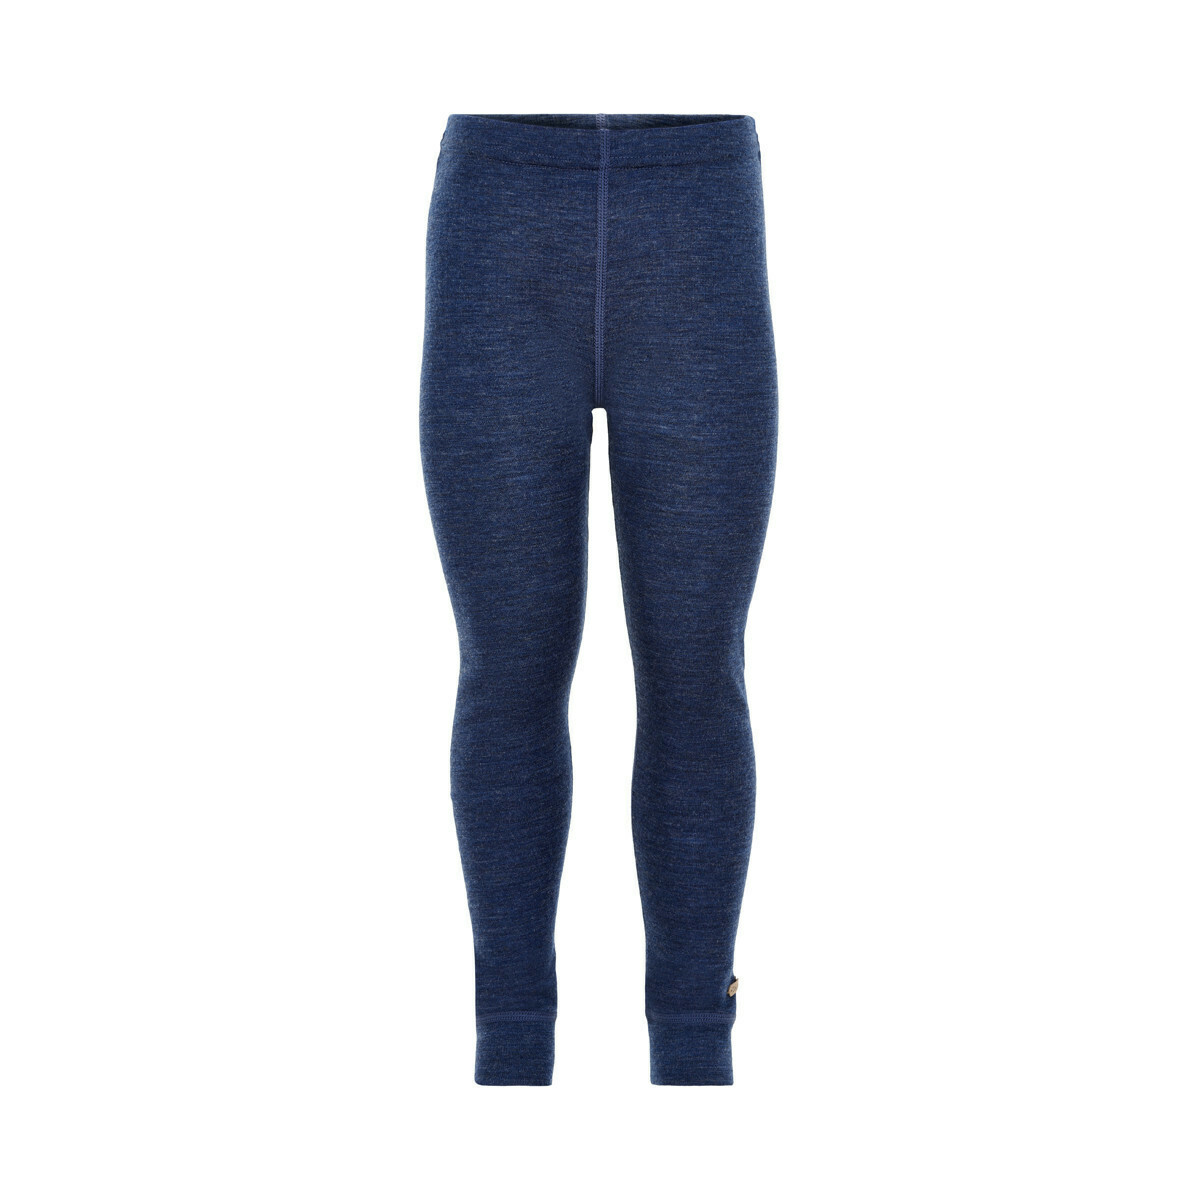 CELAVI LEGGINGS, Navy